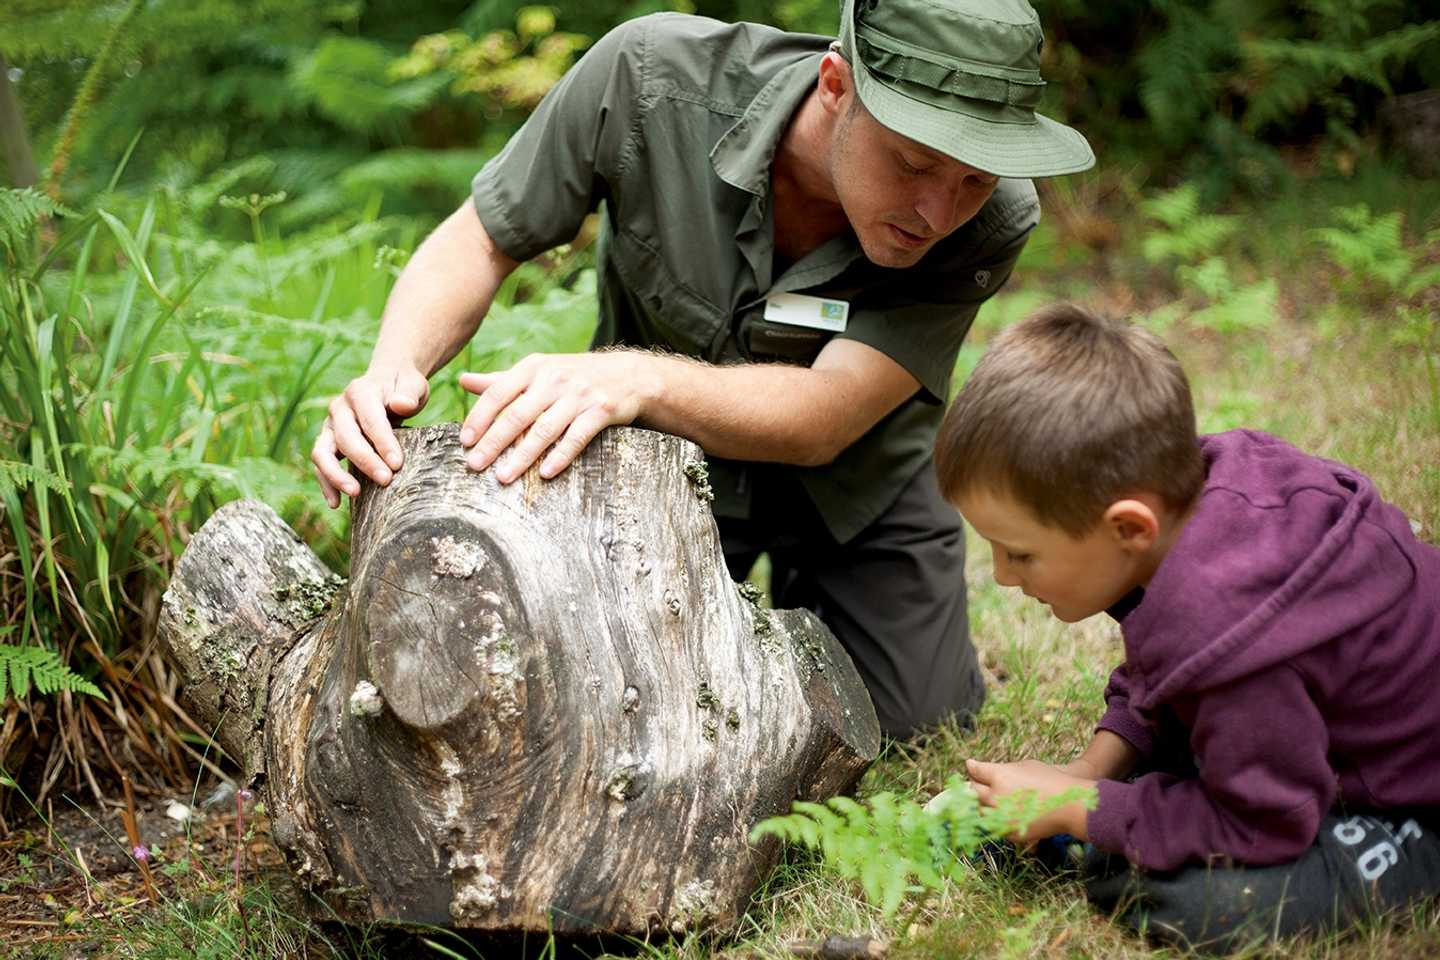 A Nature Rockz Ranger holding up a log so that a young boy can look underneath